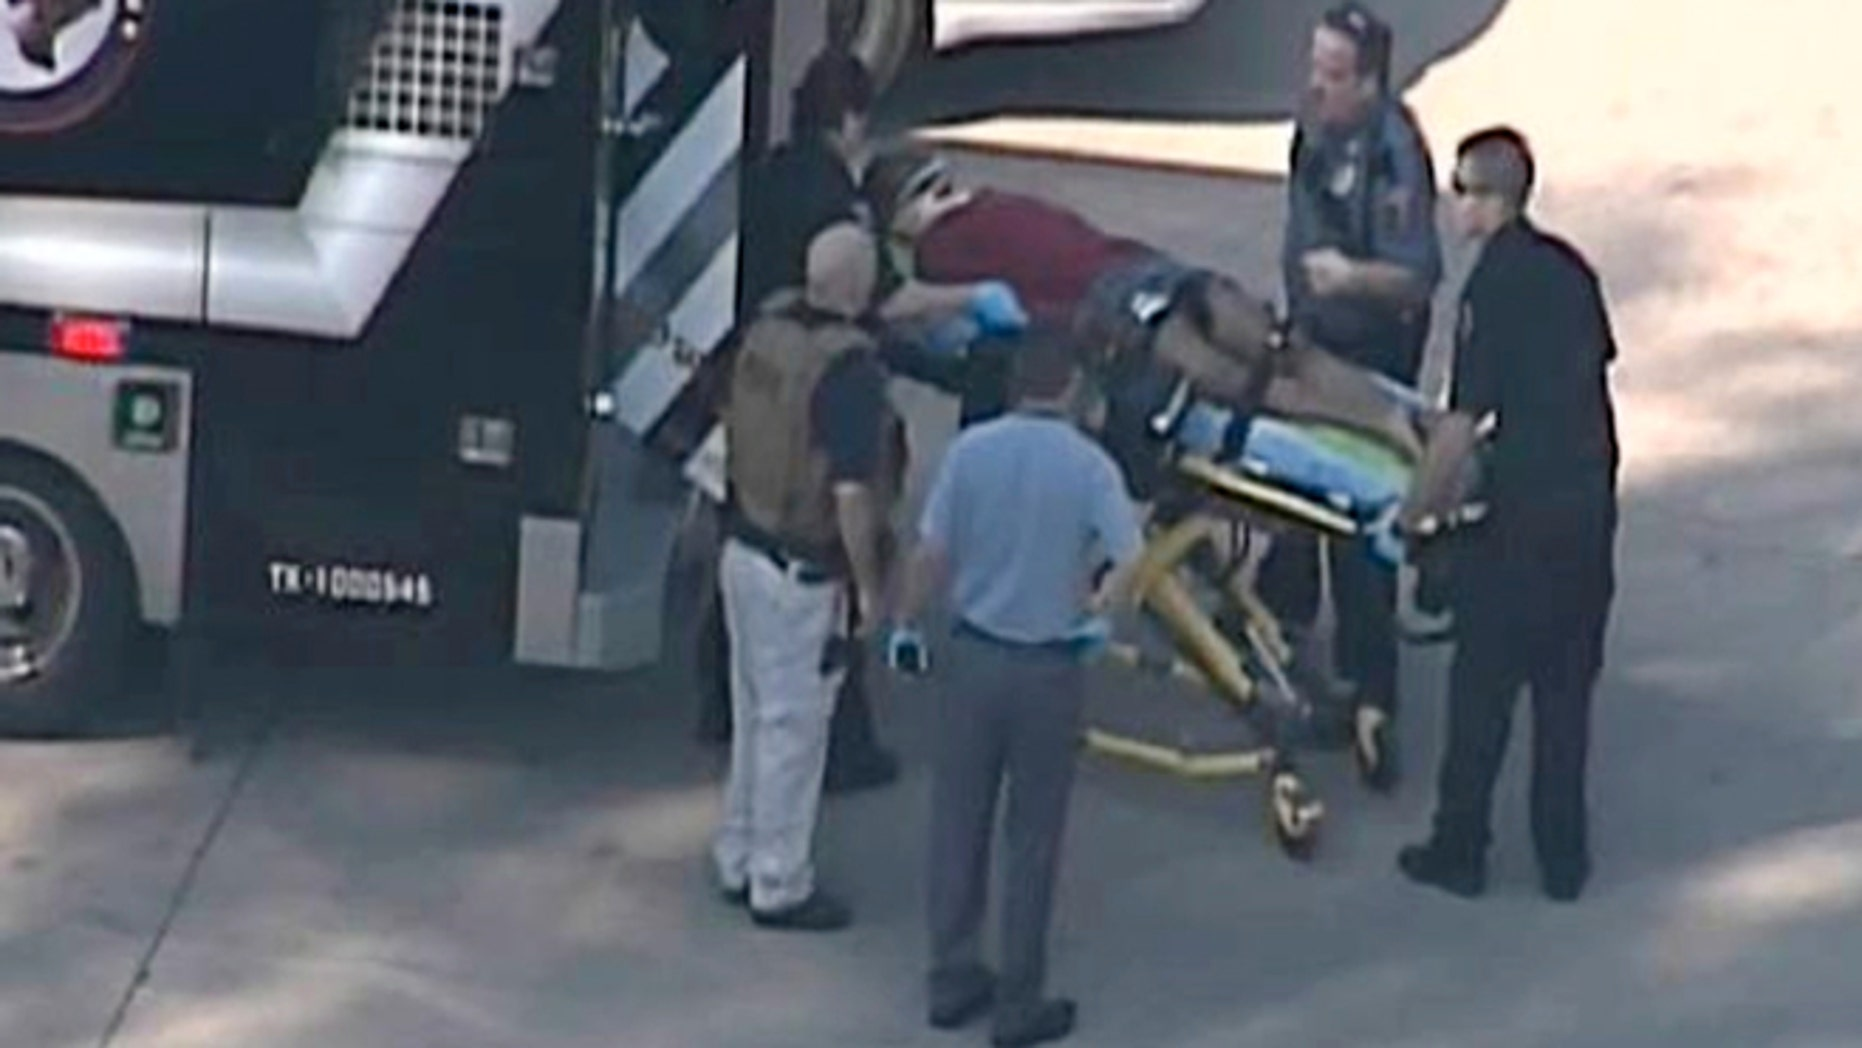 Jan. 22, 2013: In this frame grab provided by KPRC Houston, an unidentified person is transported by emergency personnel at Lone Star College Tuesday in Houston, where law enforcement officials say the community college is on lockdown amid reports of a shooter on campus.